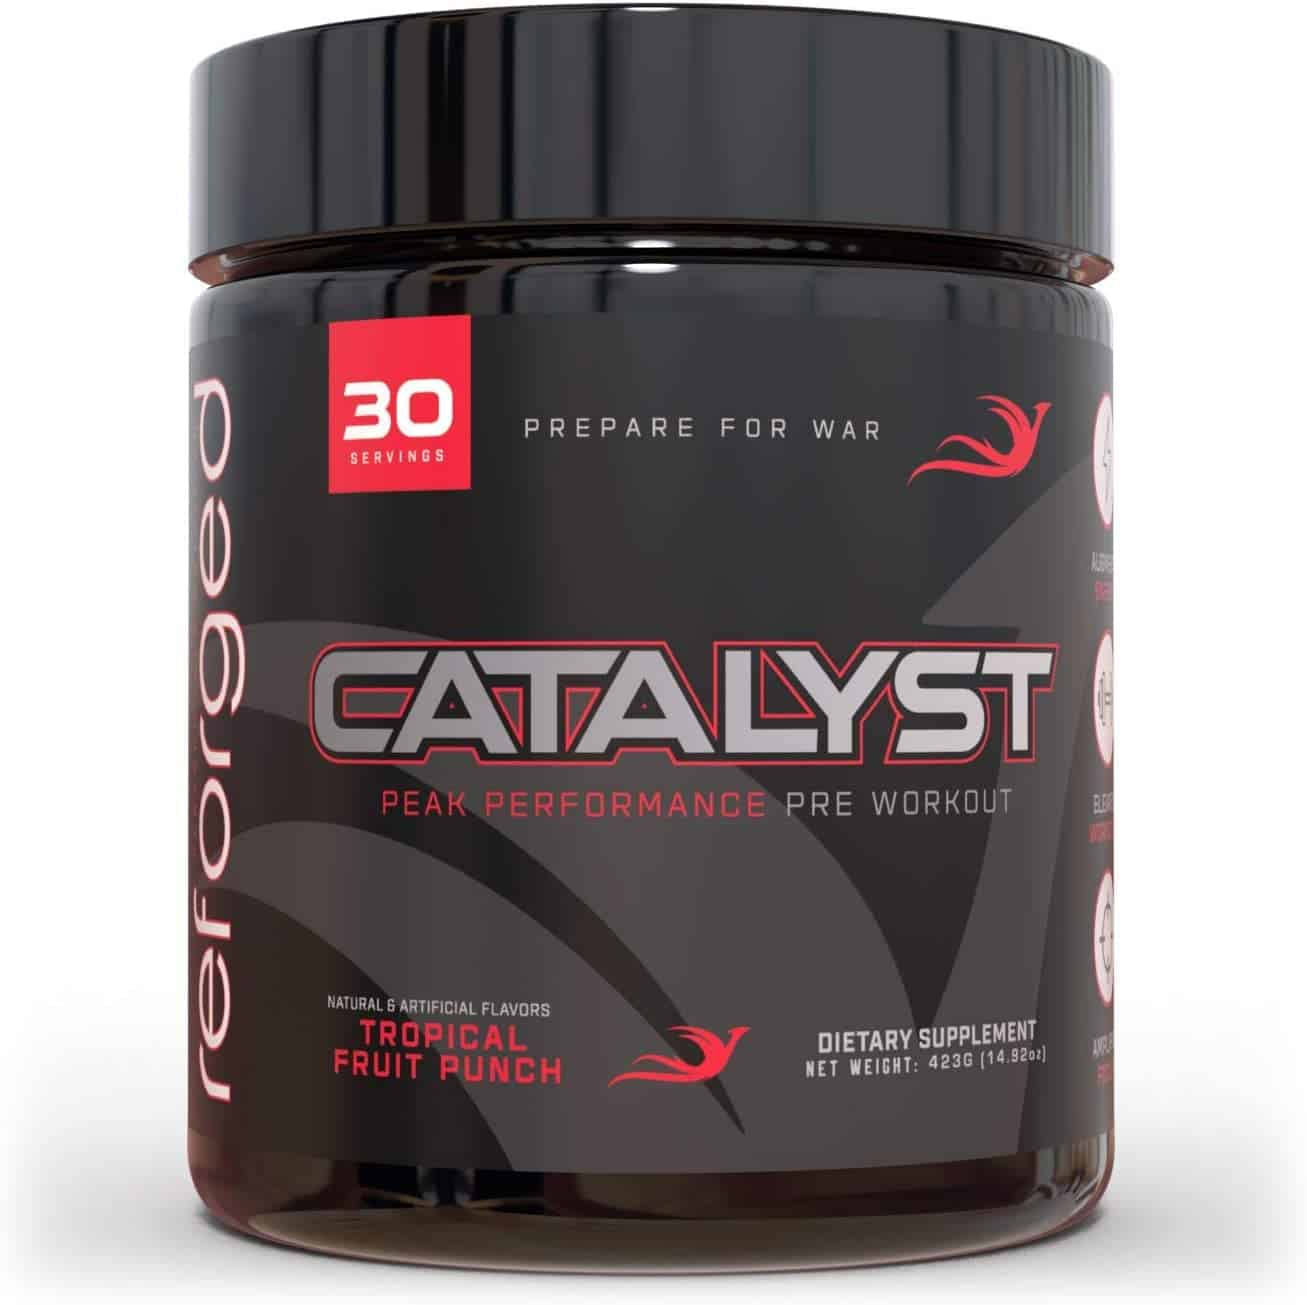 reforged catalyst pre workout